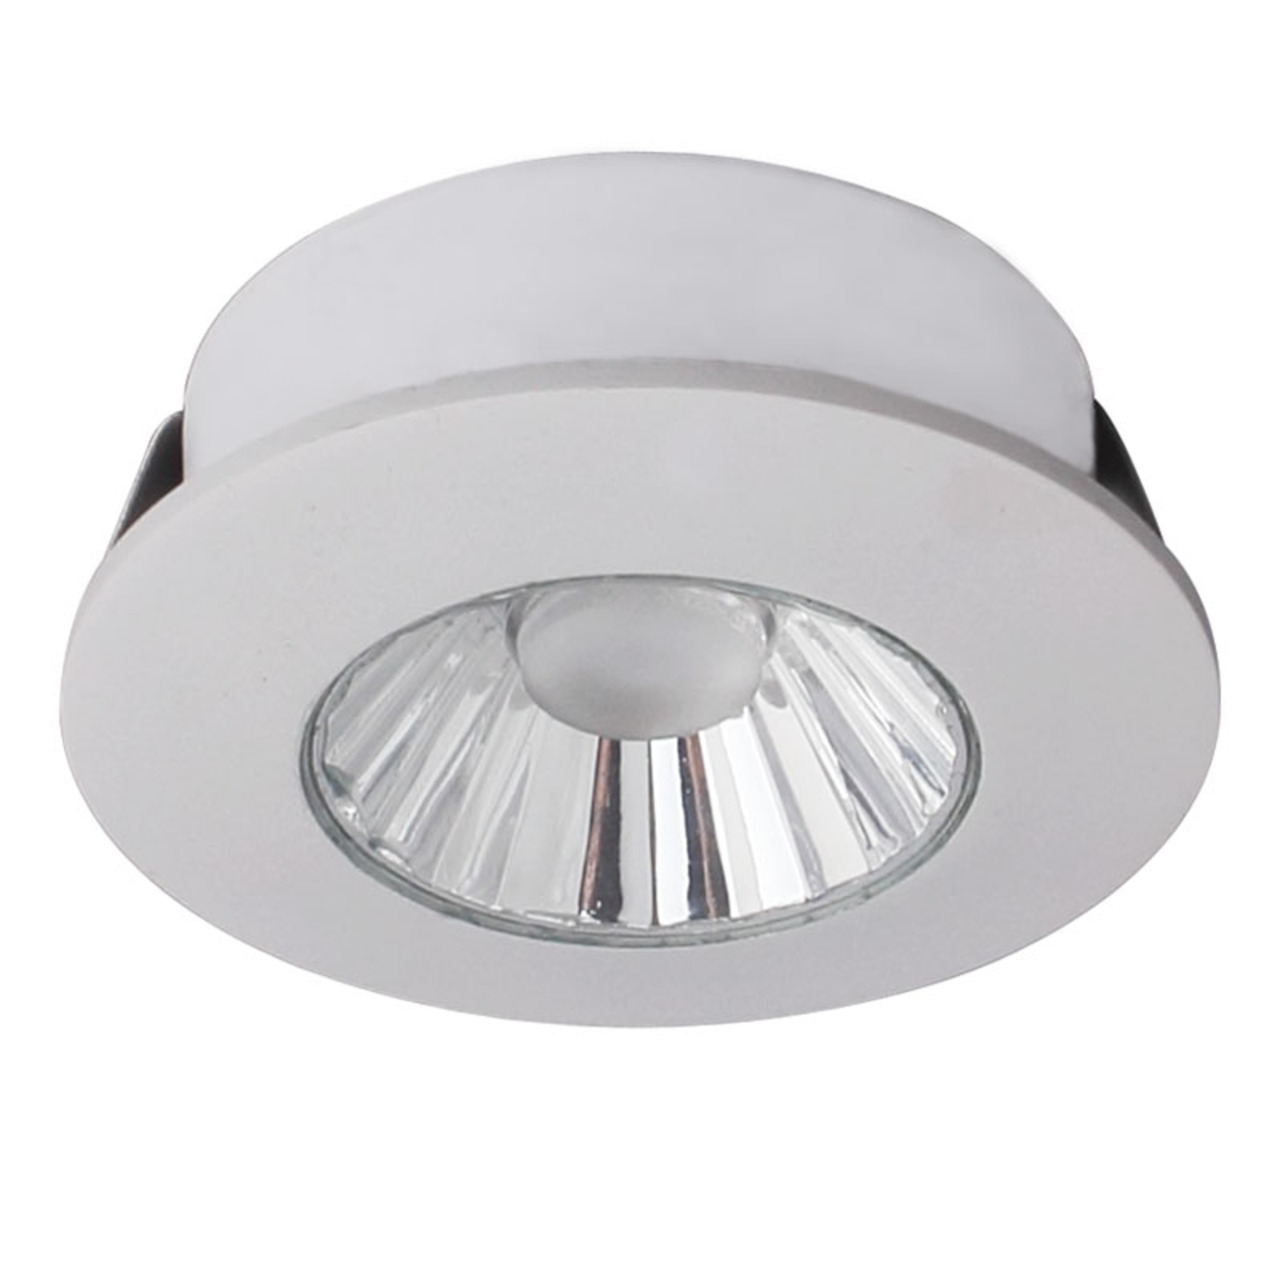 CV-Lighting 4-W-LED-Downlight- warmweiss- sehr gute Farbwiedergabe- 36- weiss- IP20